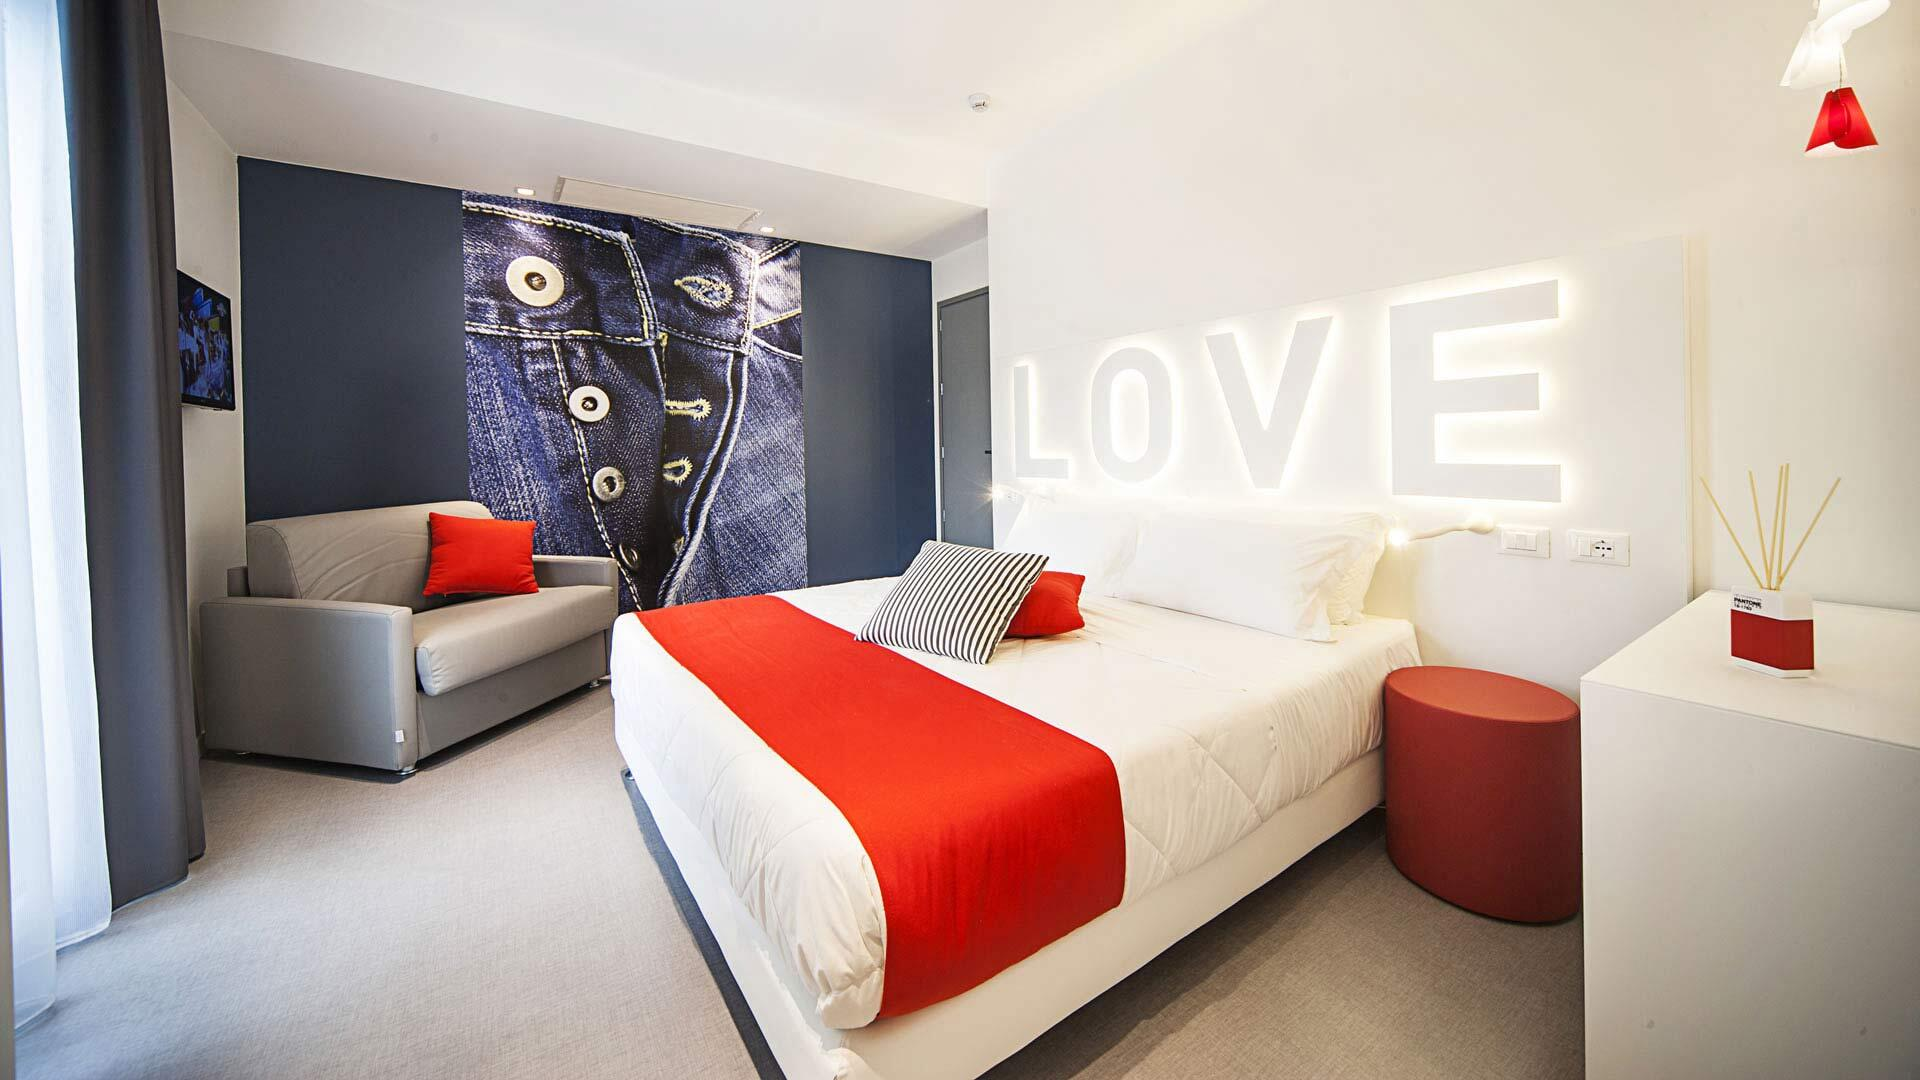 hotelloveboat it camere 008